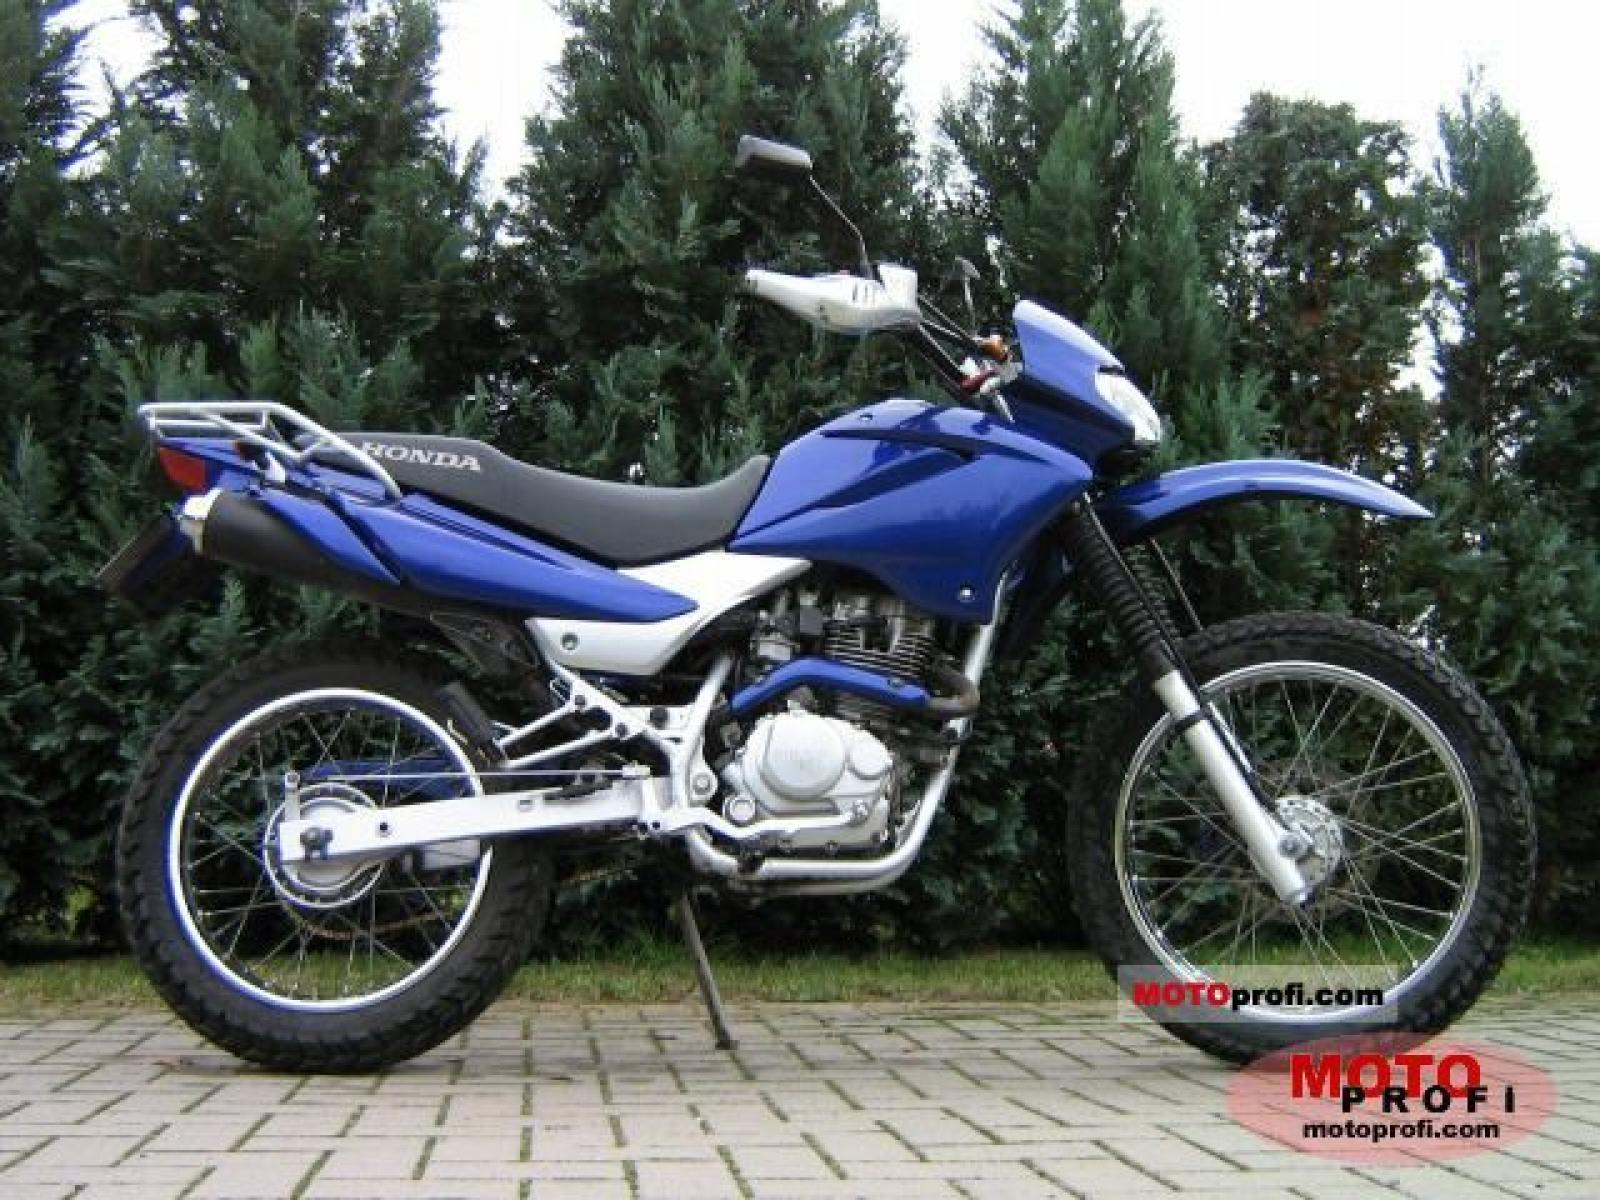 ... Array - honda xr 125 l manual rh honda xr 125 l manual logoutev de